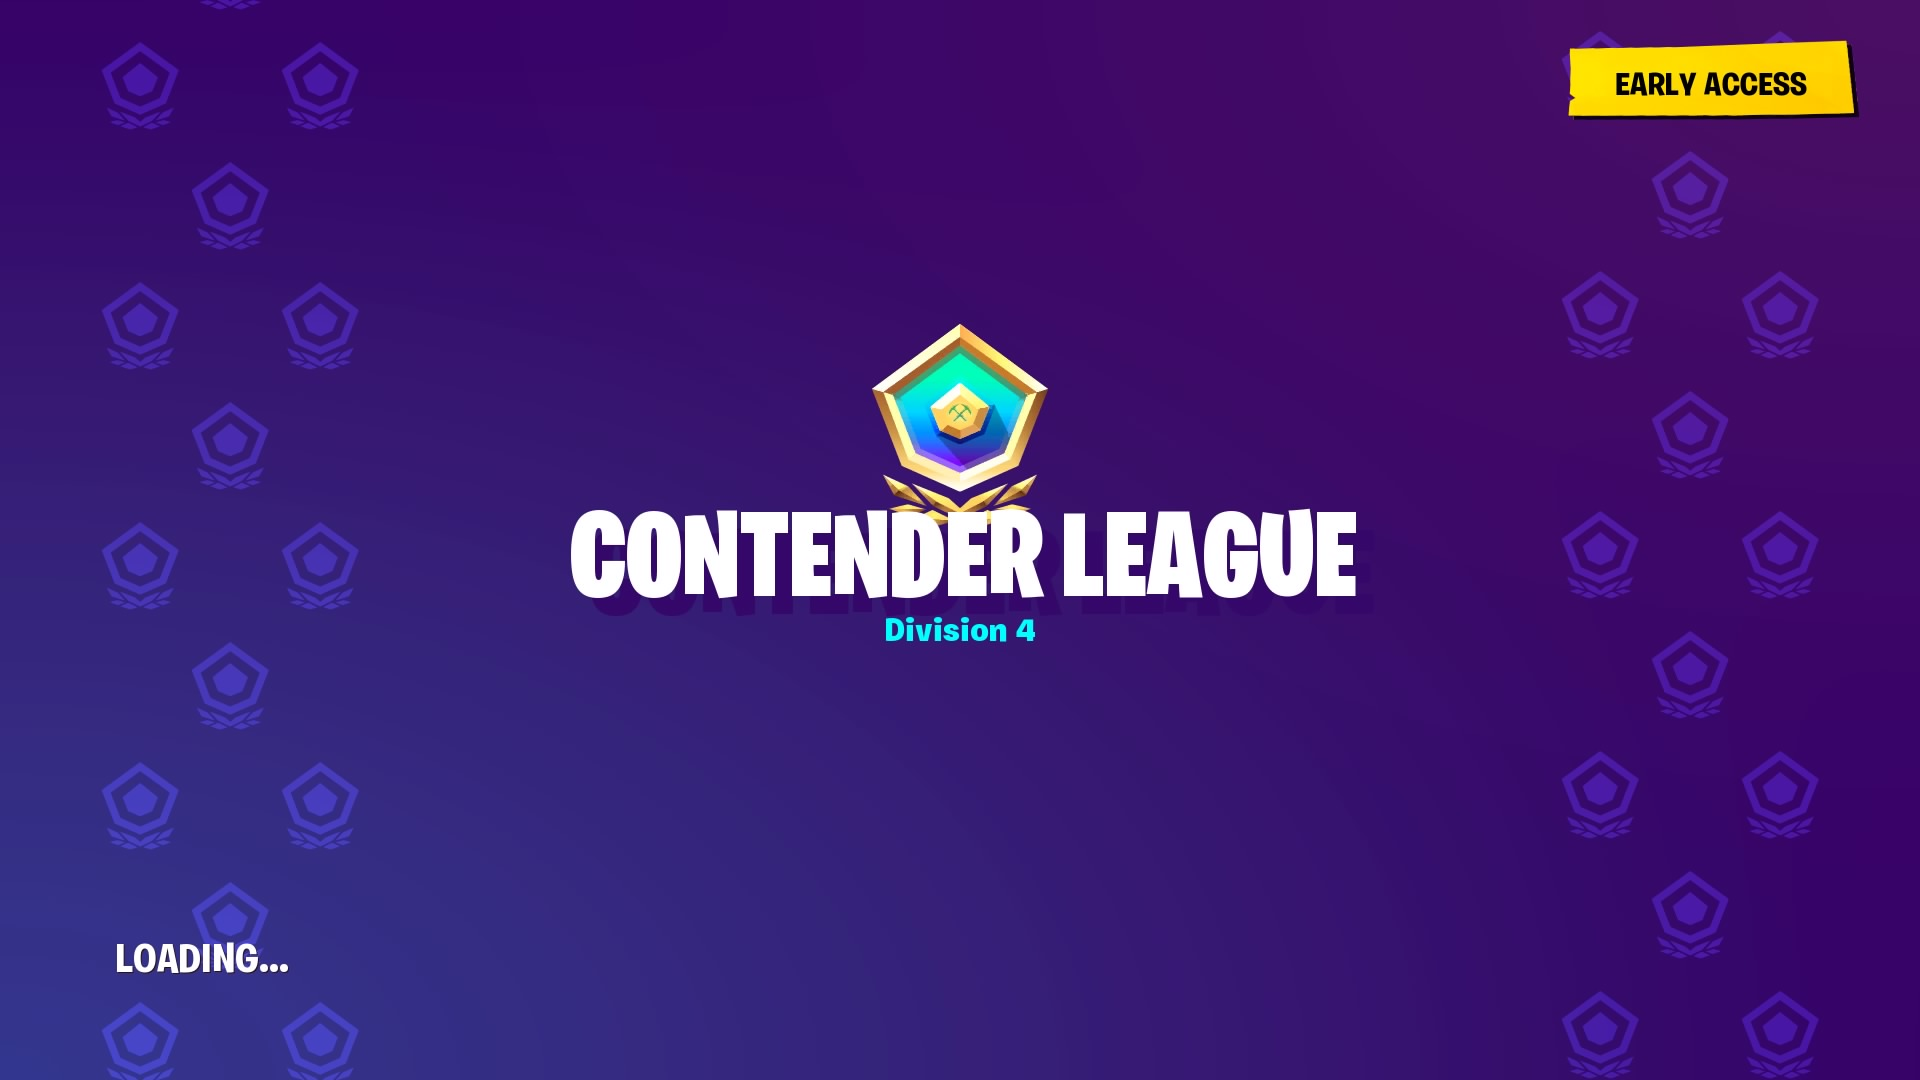 fortnite contender league hd wallpaper background 2309